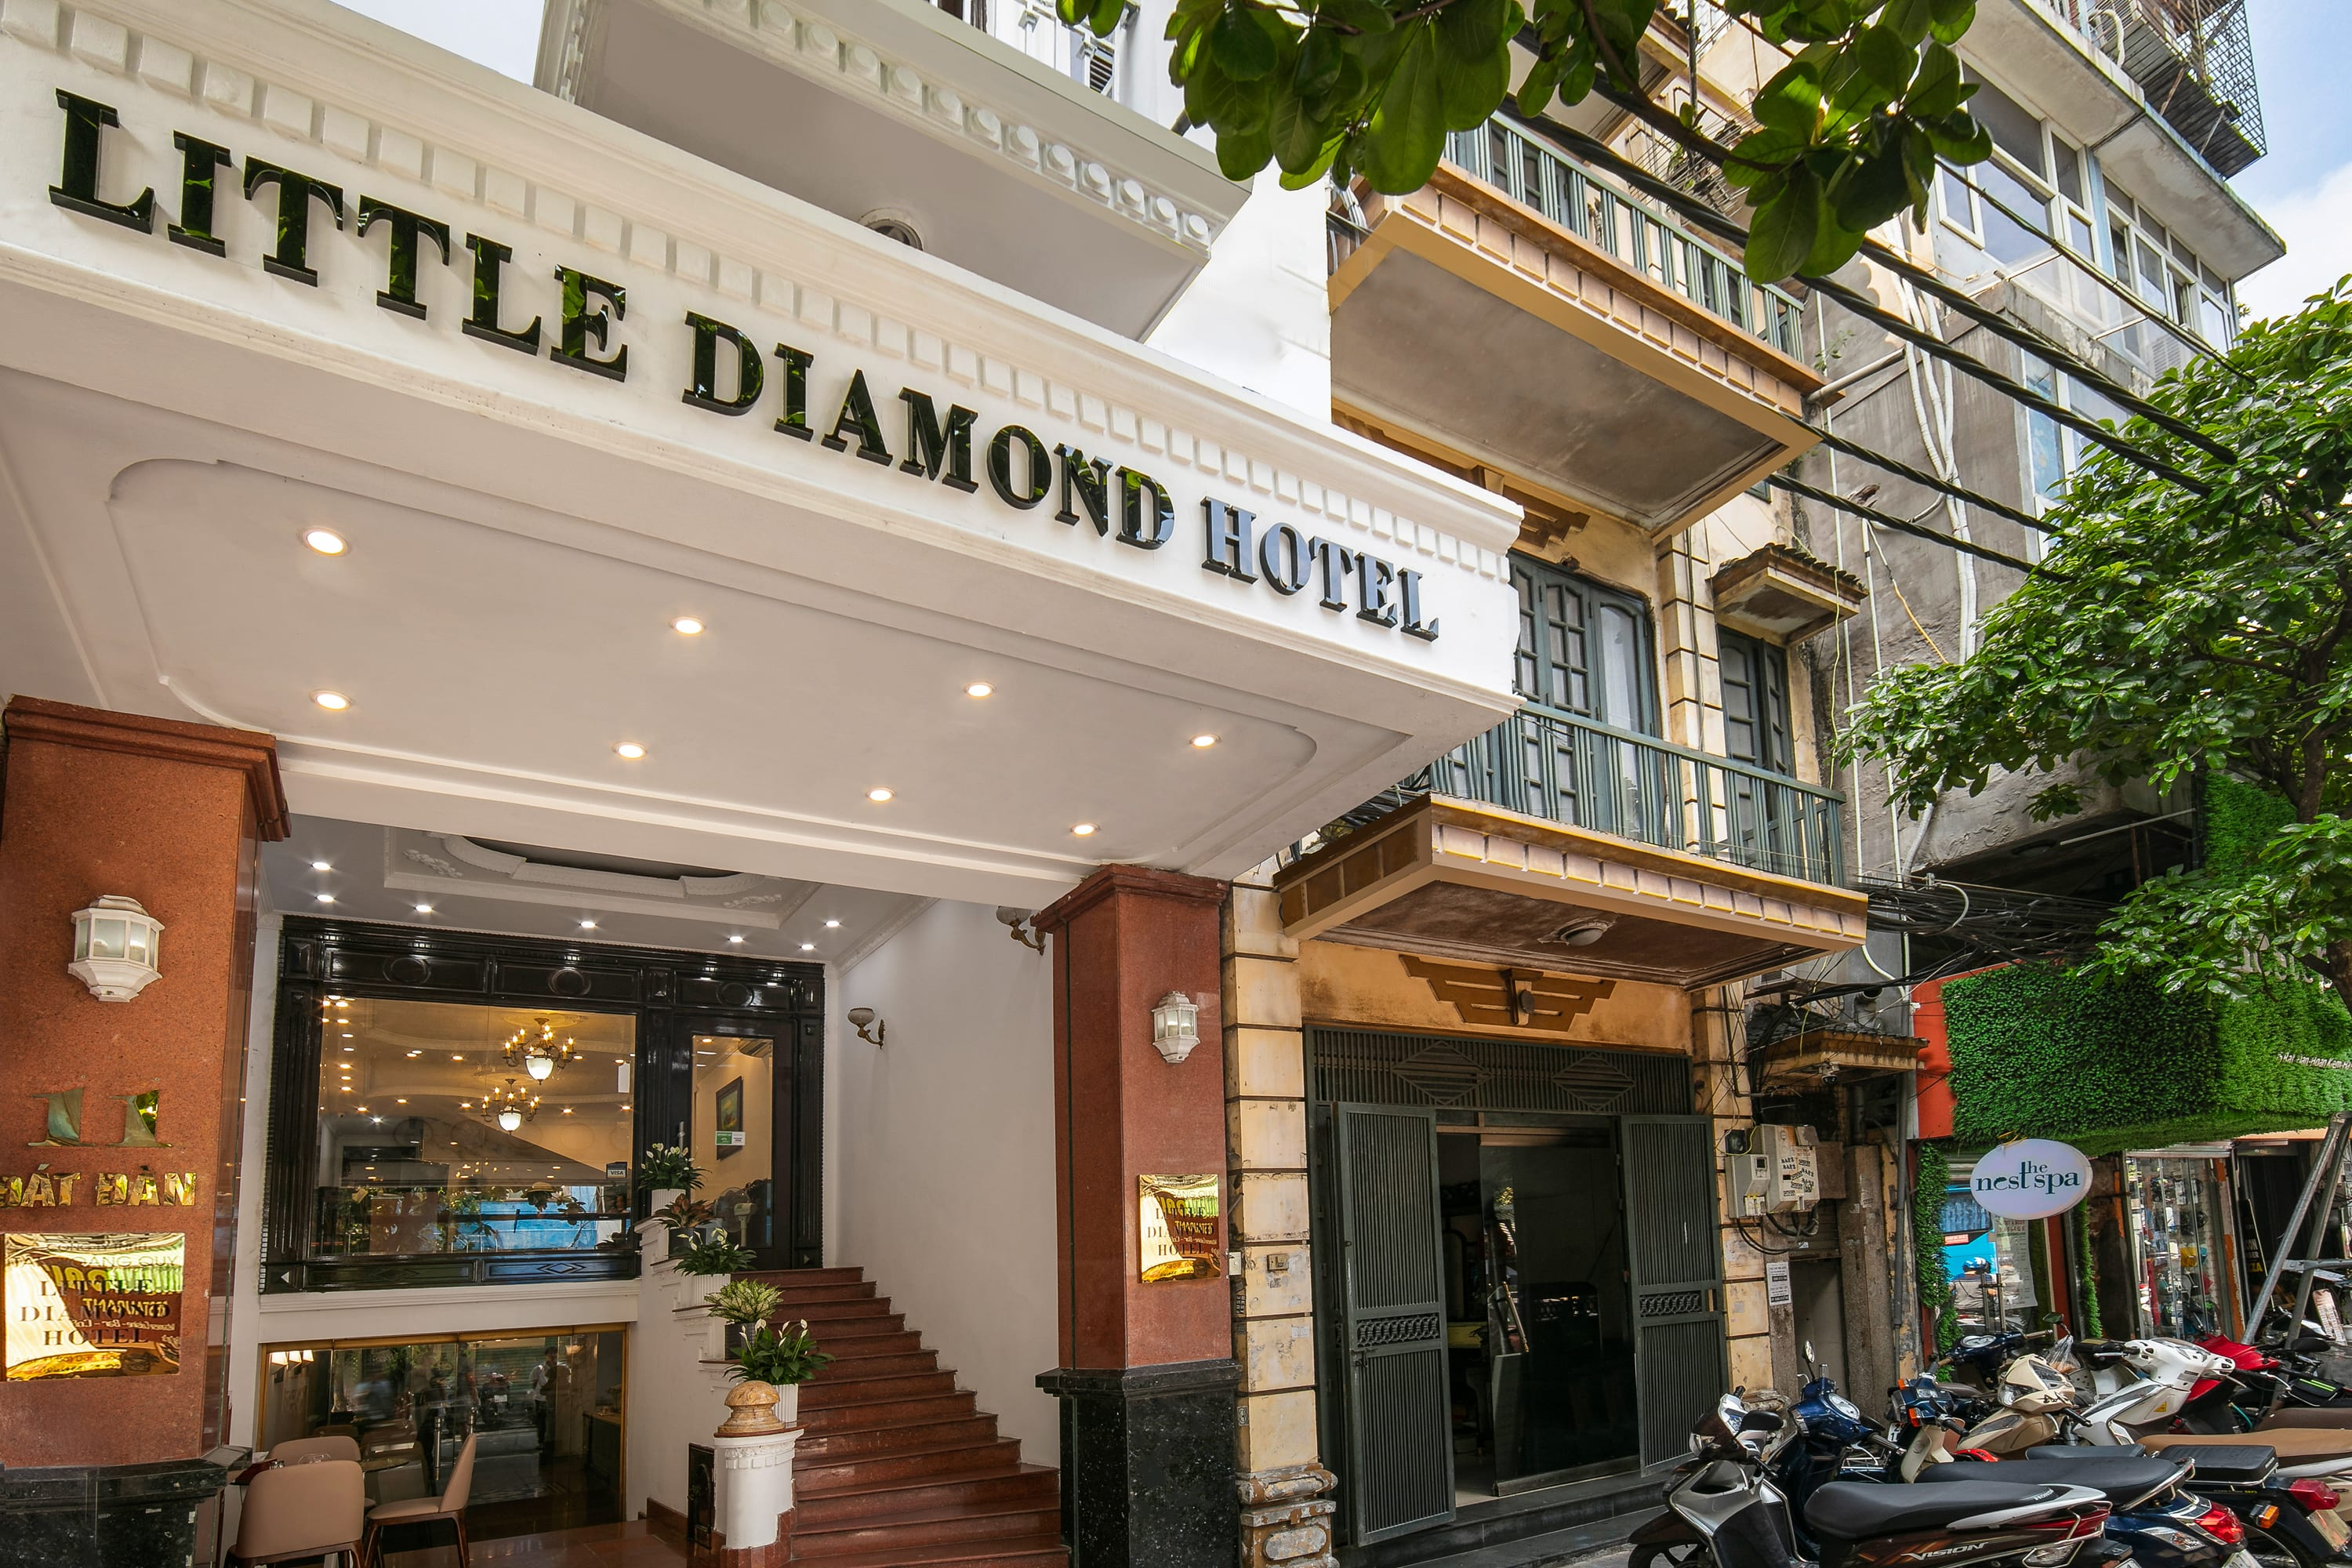 Little Hanoi Diamond